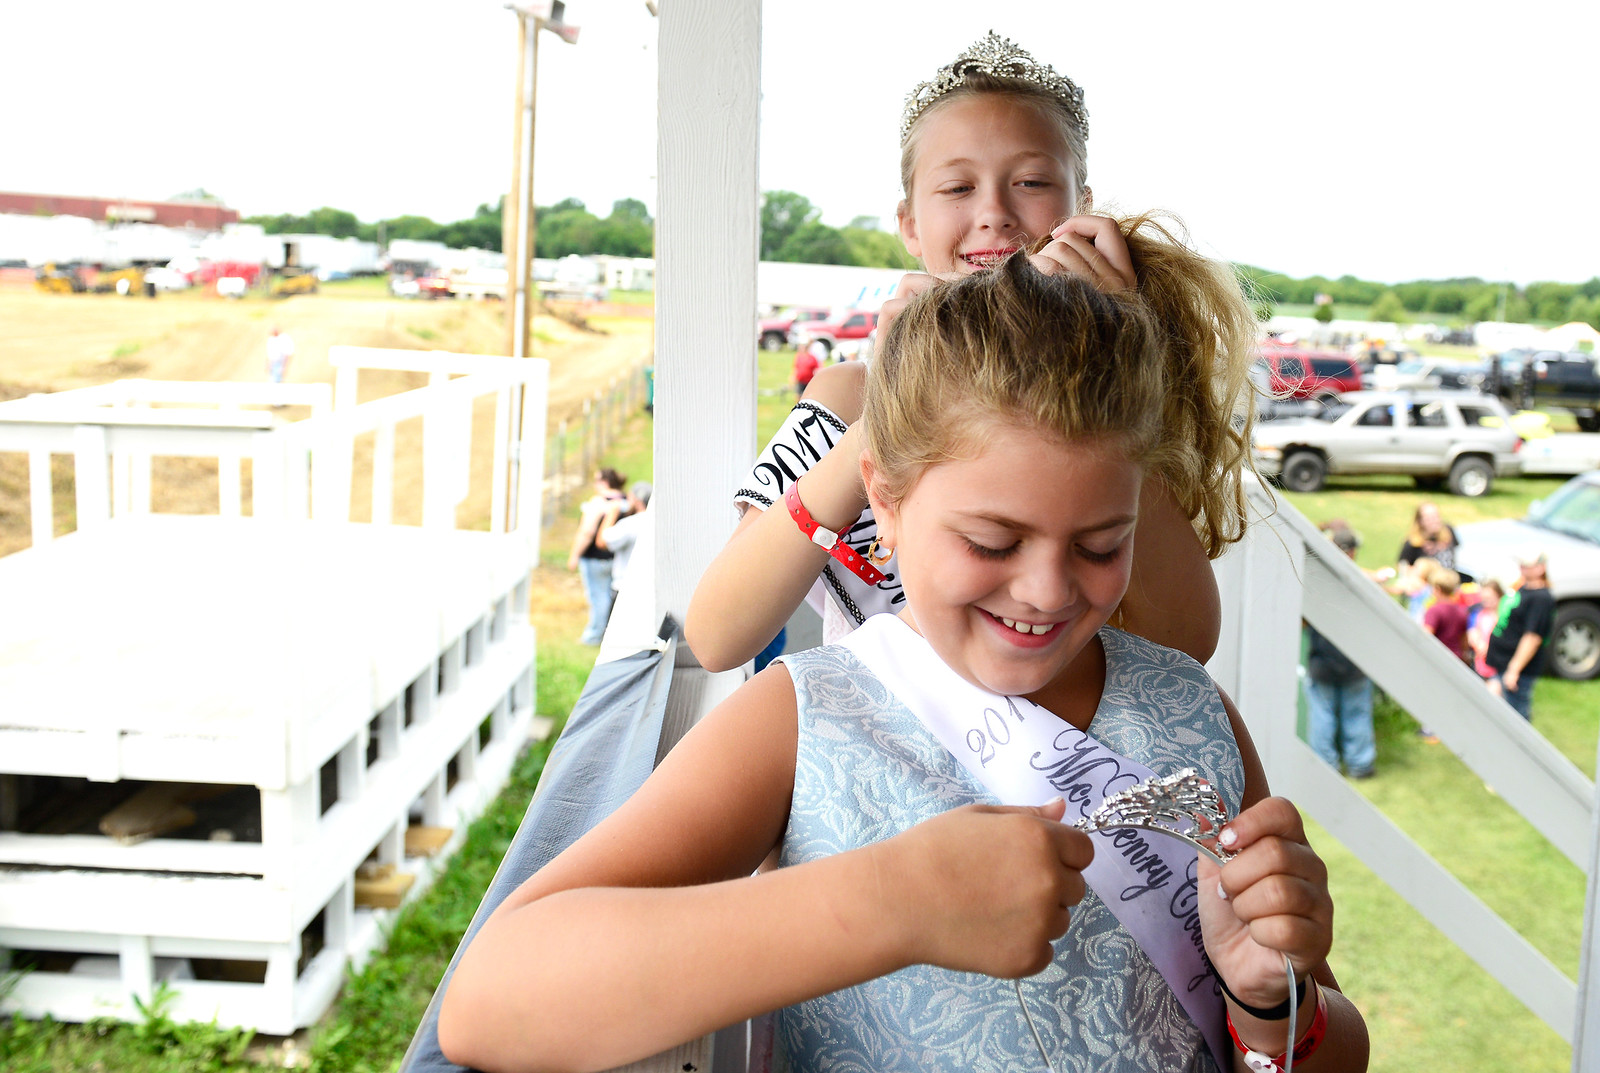 Kayla Wolf - for Shaw Media Prior to the demolition derby at the McHenry County Fair Junior Miss McHenry County Isabella Novalinski does the hair of McHenry County Princess Dominique Tomasello Sunday, Aug. 6, 2017, in Woodstock. The fair pageant winners welcomed the crowd to their derby and watched the events of the day.